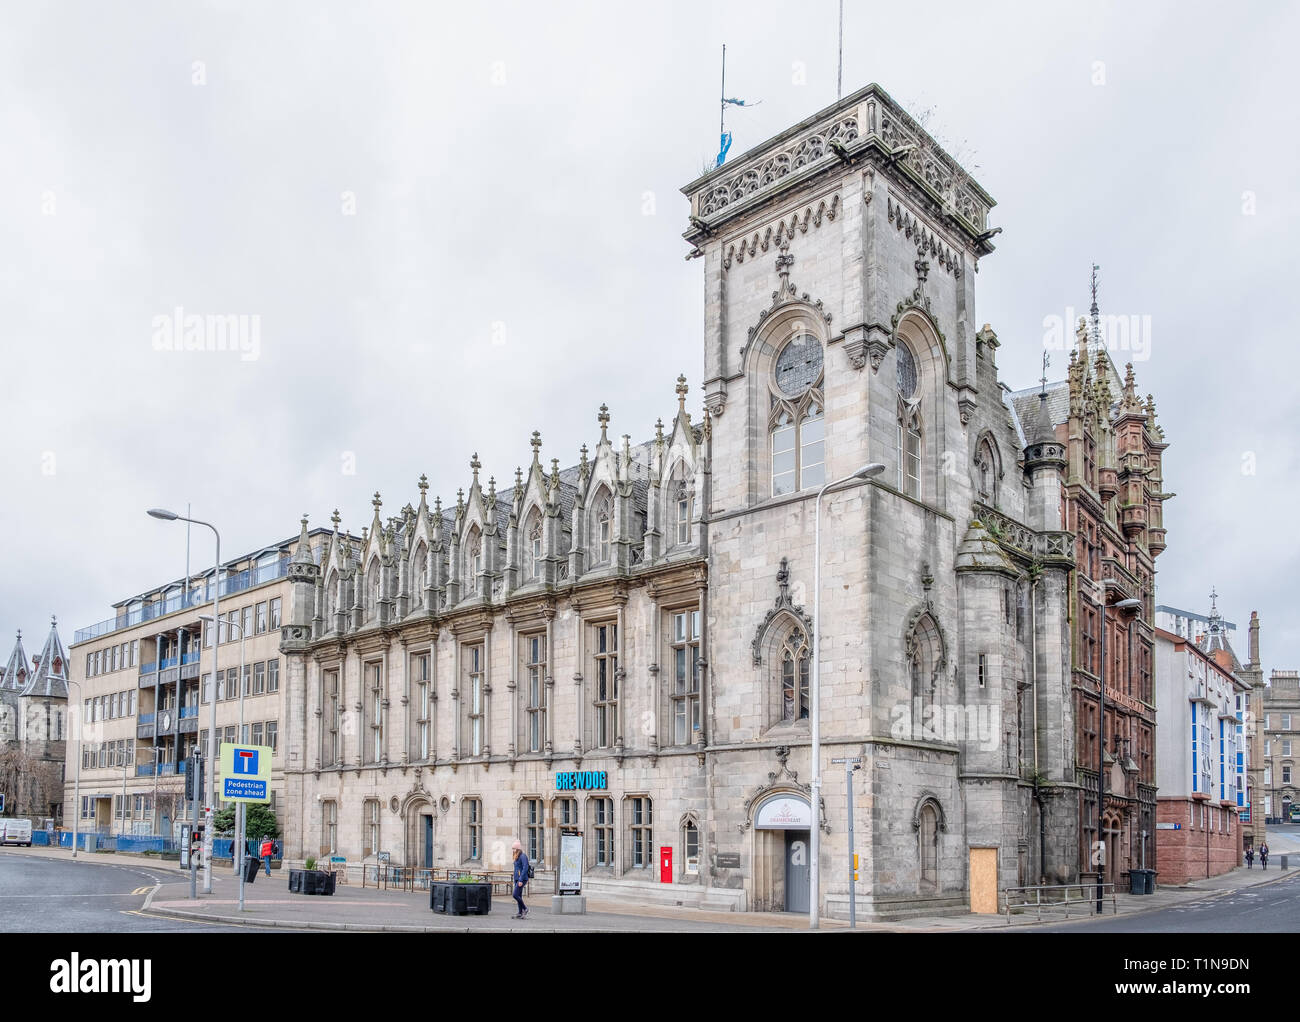 Dundee, Scotland, UK - March 22, 2019: The impressive architecture at Panmure Street & Meadowside in the City Centre of Dundee in Scotland - Stock Image